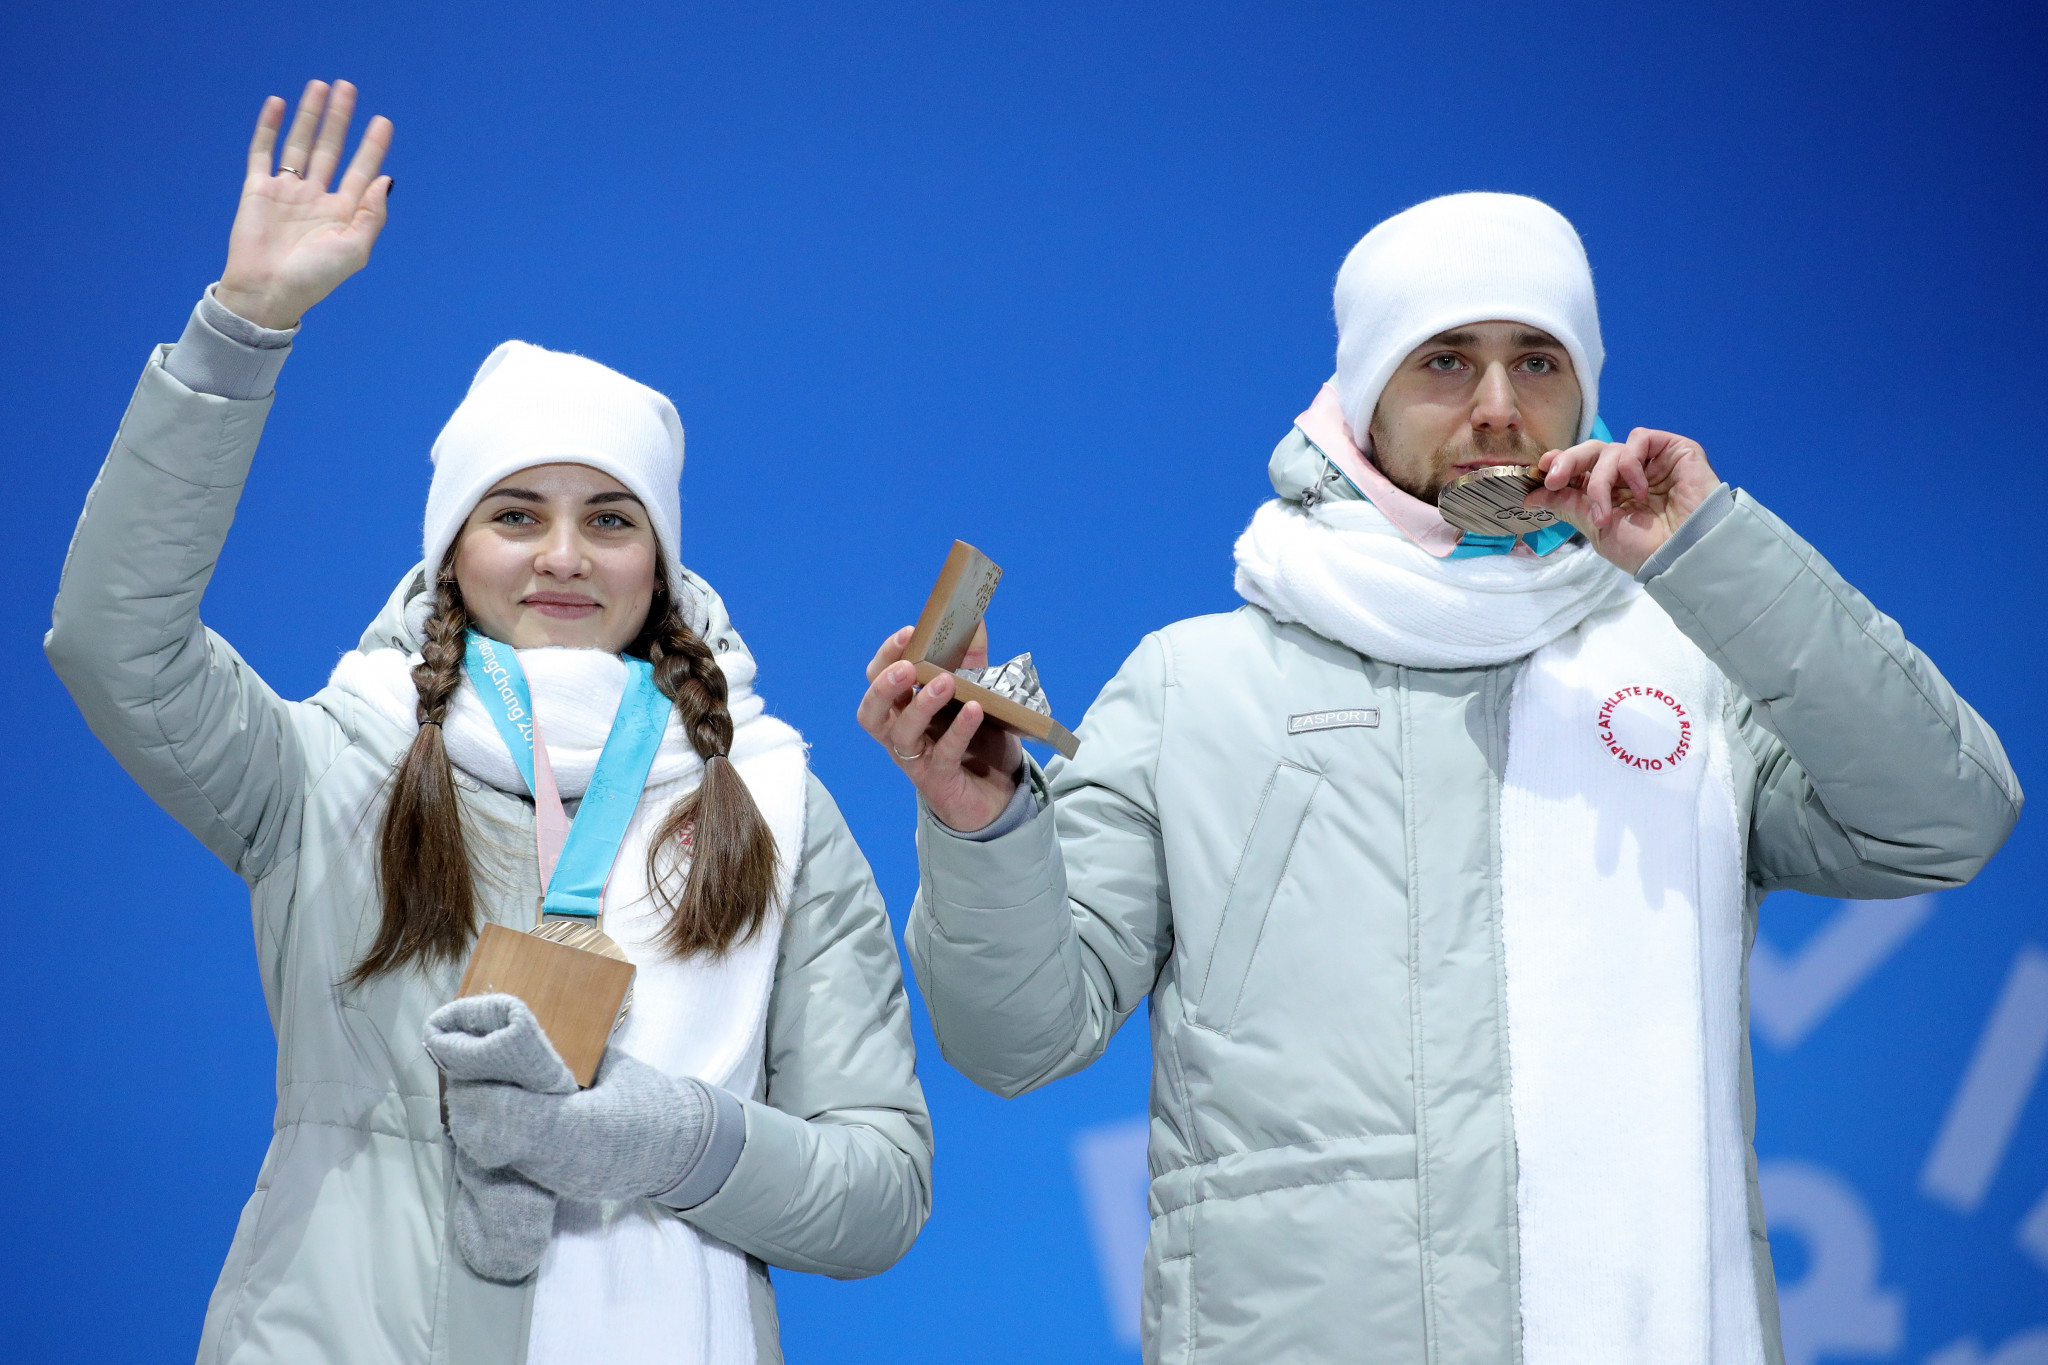 Aleksandr Krushelnitckii and his wife and partner Anastasia Bryzgalova were stripped of their bronze medals ©Getty Images